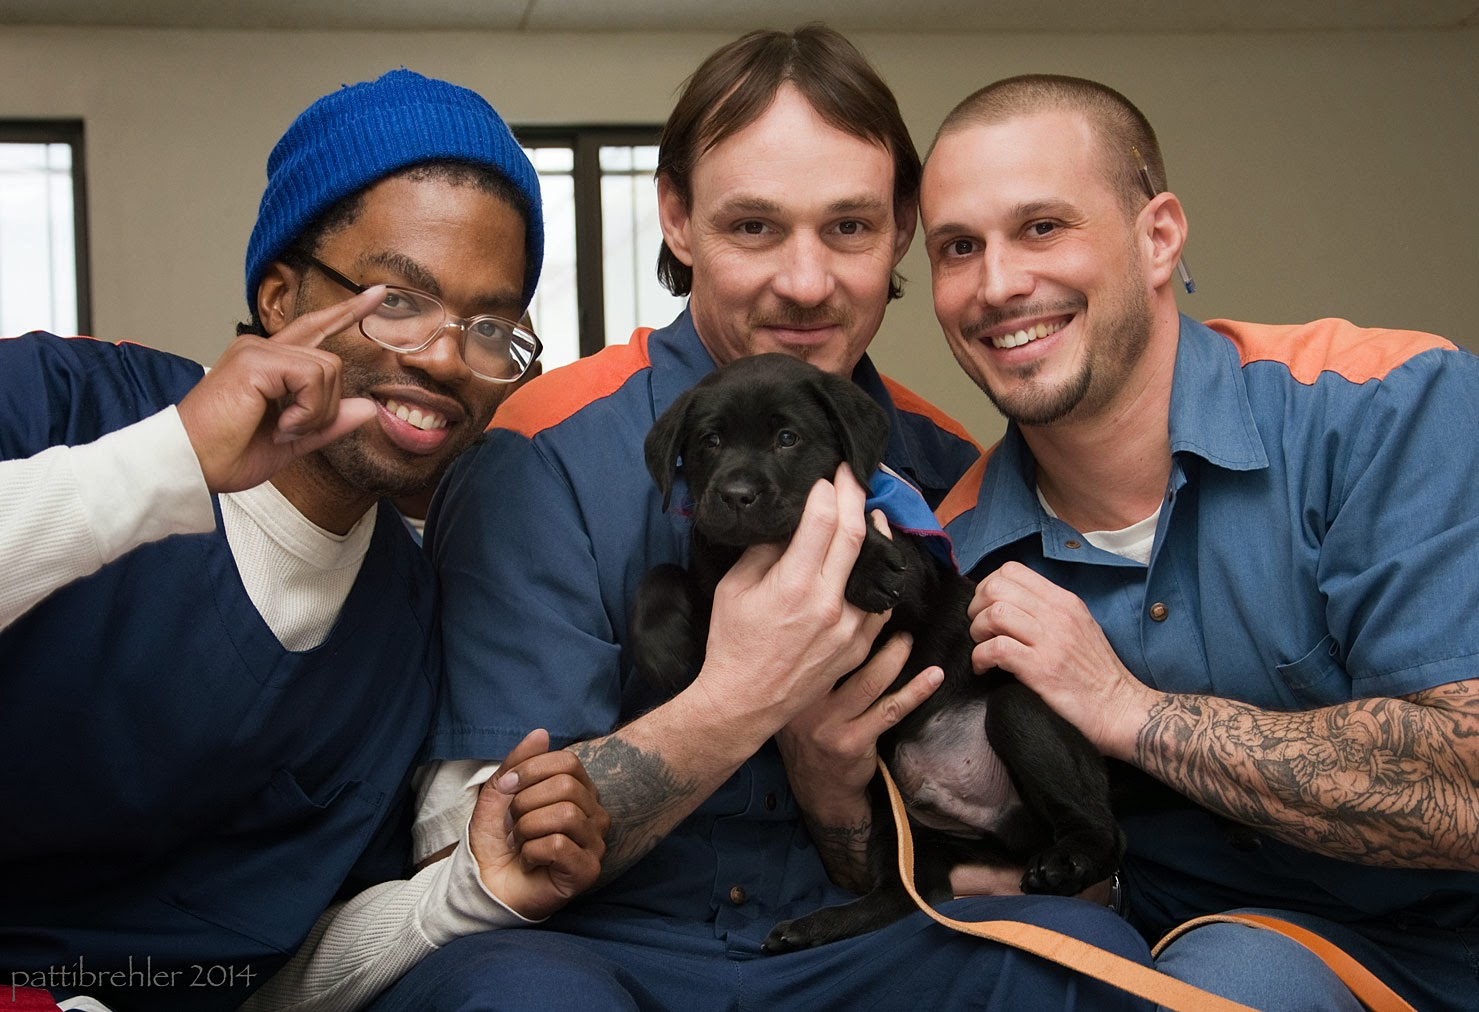 A small black lab puppy is held by three men sitting close togehter. The man on the left is wearing a blue knit hat and glasses and is pointing up with his right index finger. The middle man is holding the upper part of the puppy and has brown hair. The man on the right is holding the belly of the puppy and his head is shaved. Tattoos cover his left arm.They are all wearing blue shirts, the two on the right have orange stripes on the shoulders.